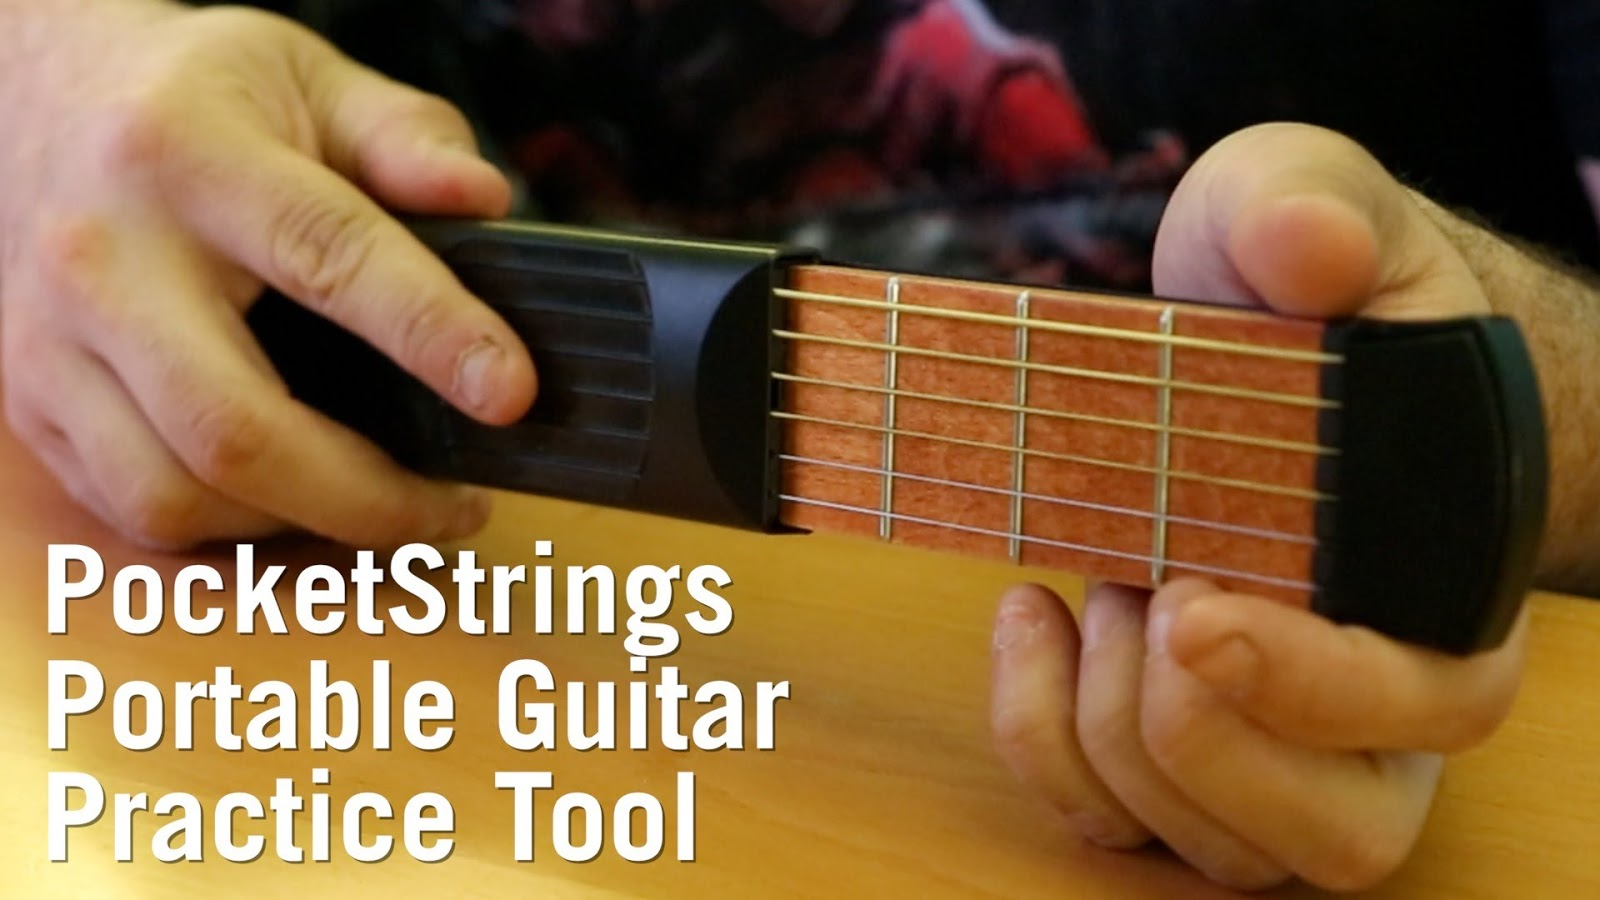 Learn Guitar Articles All Just Online Electricguitarcouk Lesson Electric Anatomy This Article Is A Form Of Sharing The Results Their Own Experiences Kelaurga Friends Or From Highly Recommended Literature